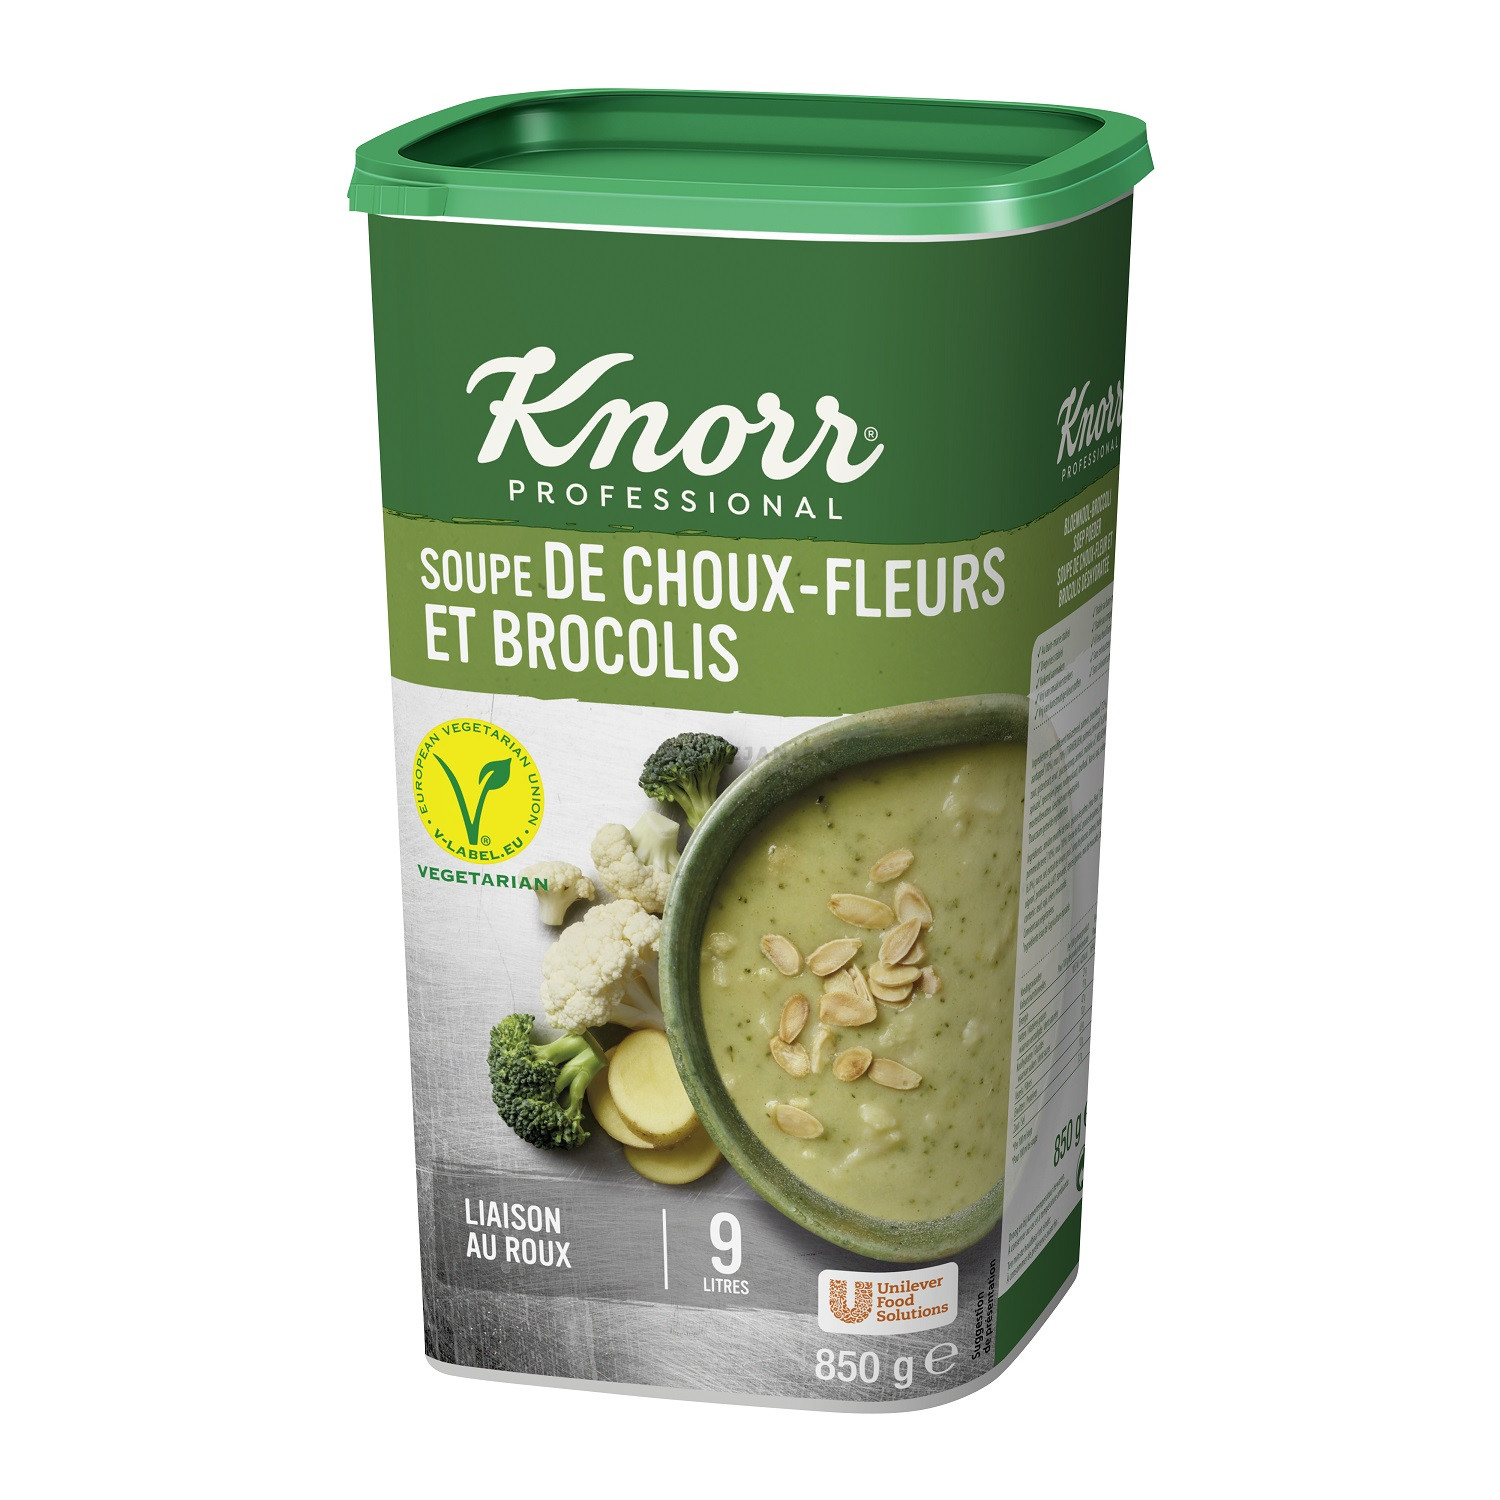 Knorr soup cream of Cauliflower & Broccoli 850g Professional